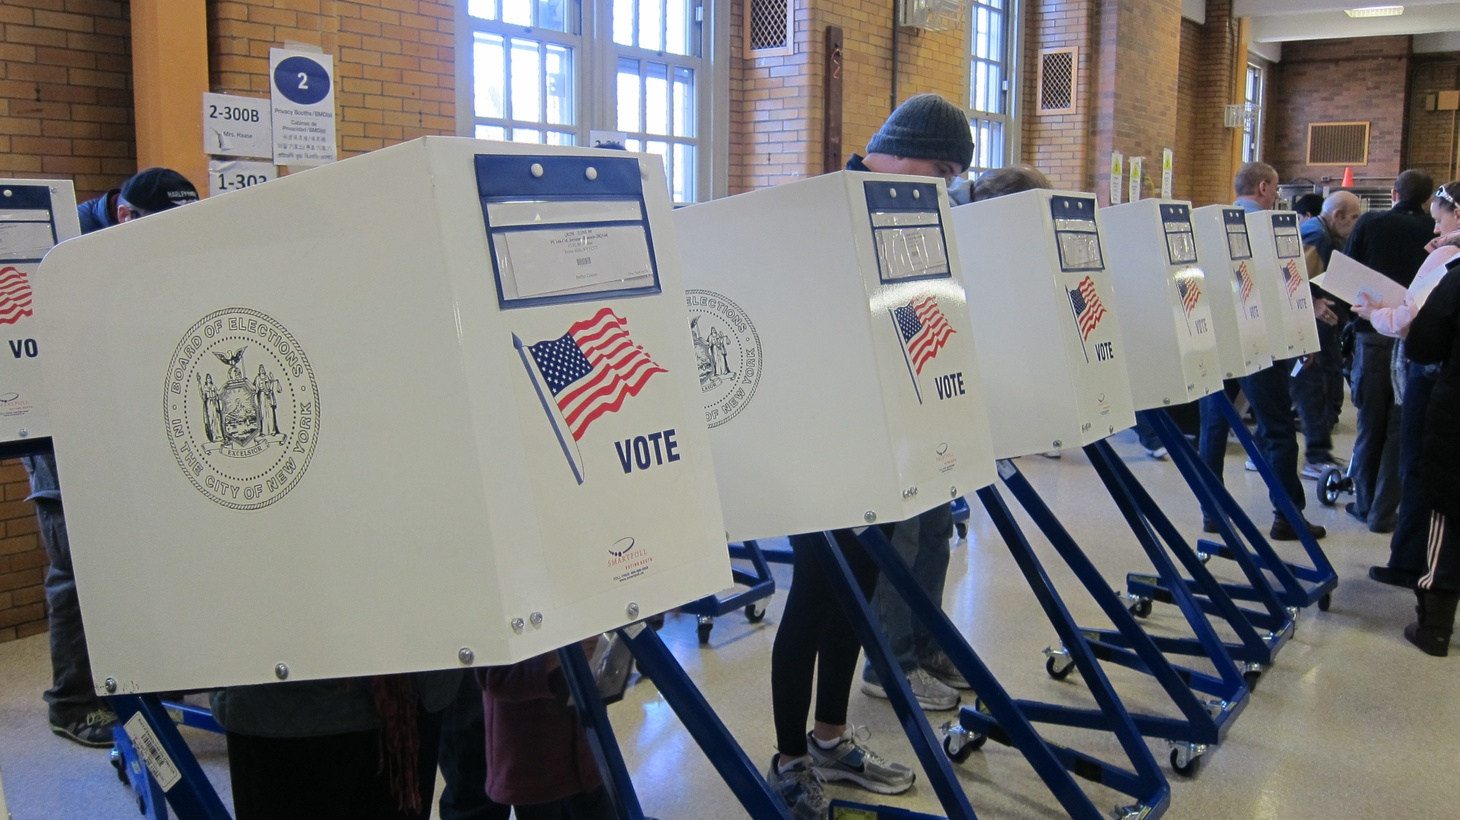 FBI Director James Comey appeared before the House Judiciary Committee to report that there have been more hacks of voter registration databases. How serious is the danger that the US election could be compromised?